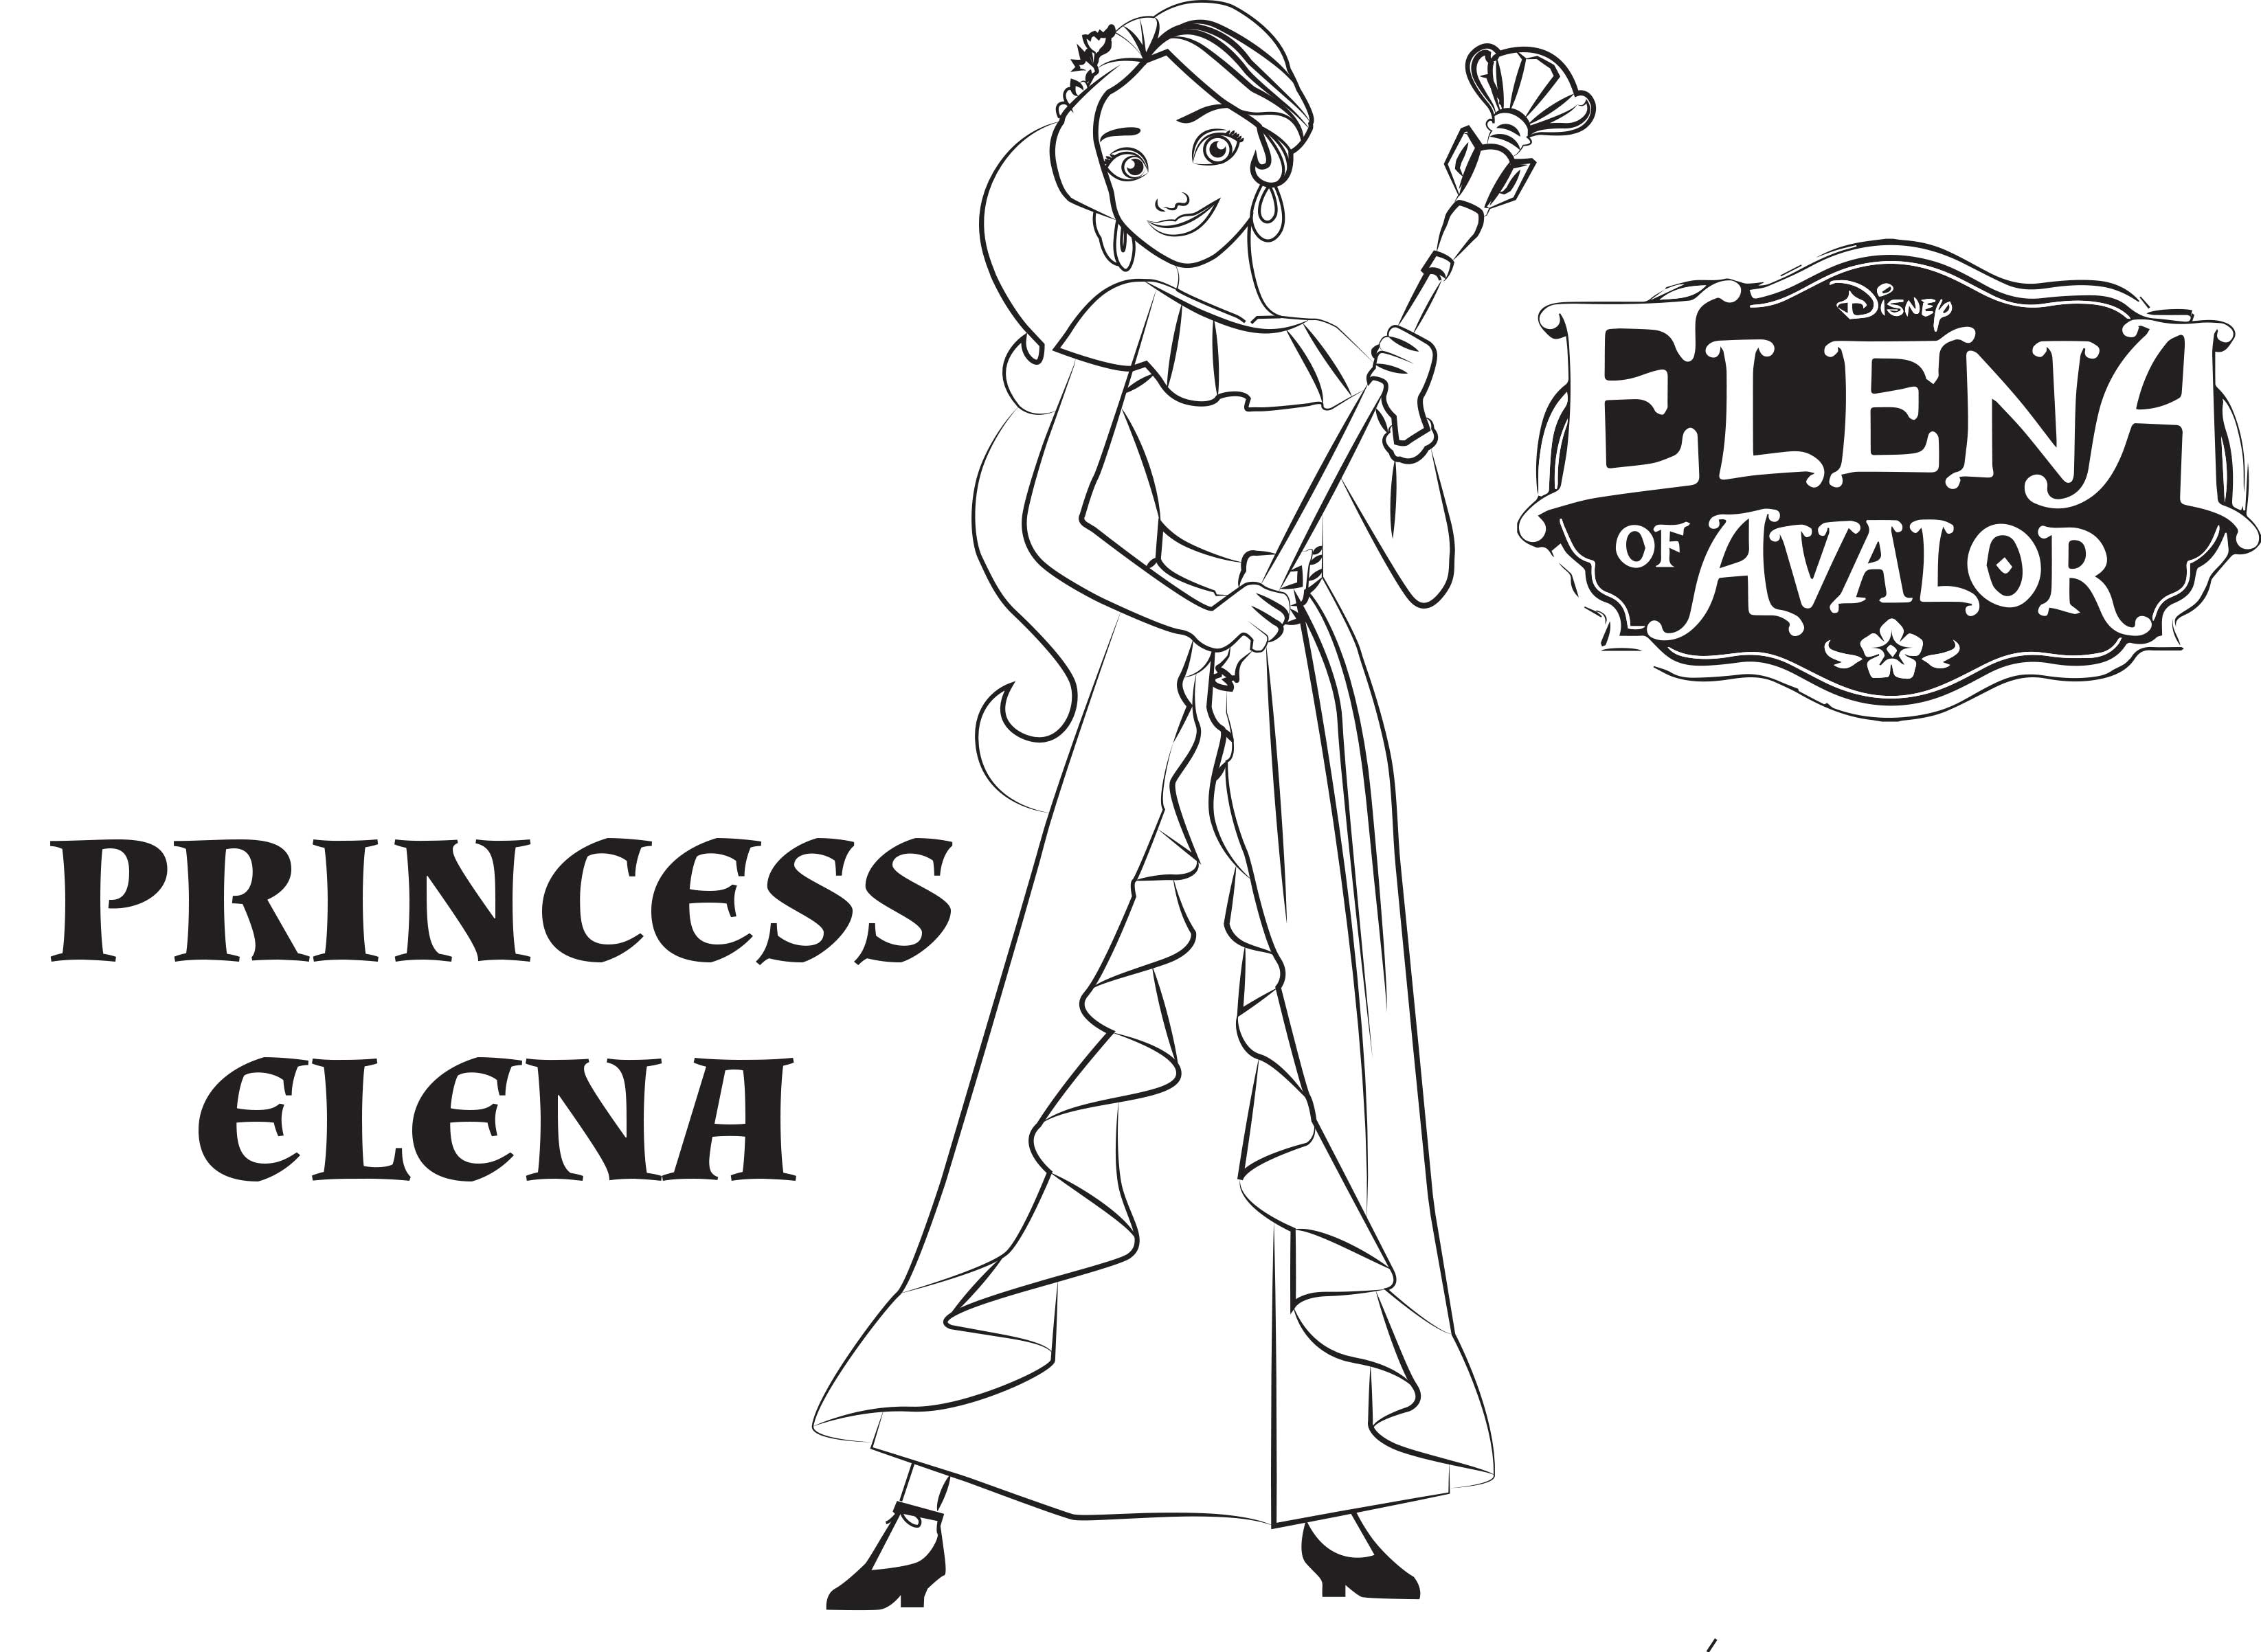 Elena Avalor coloring page to download for free